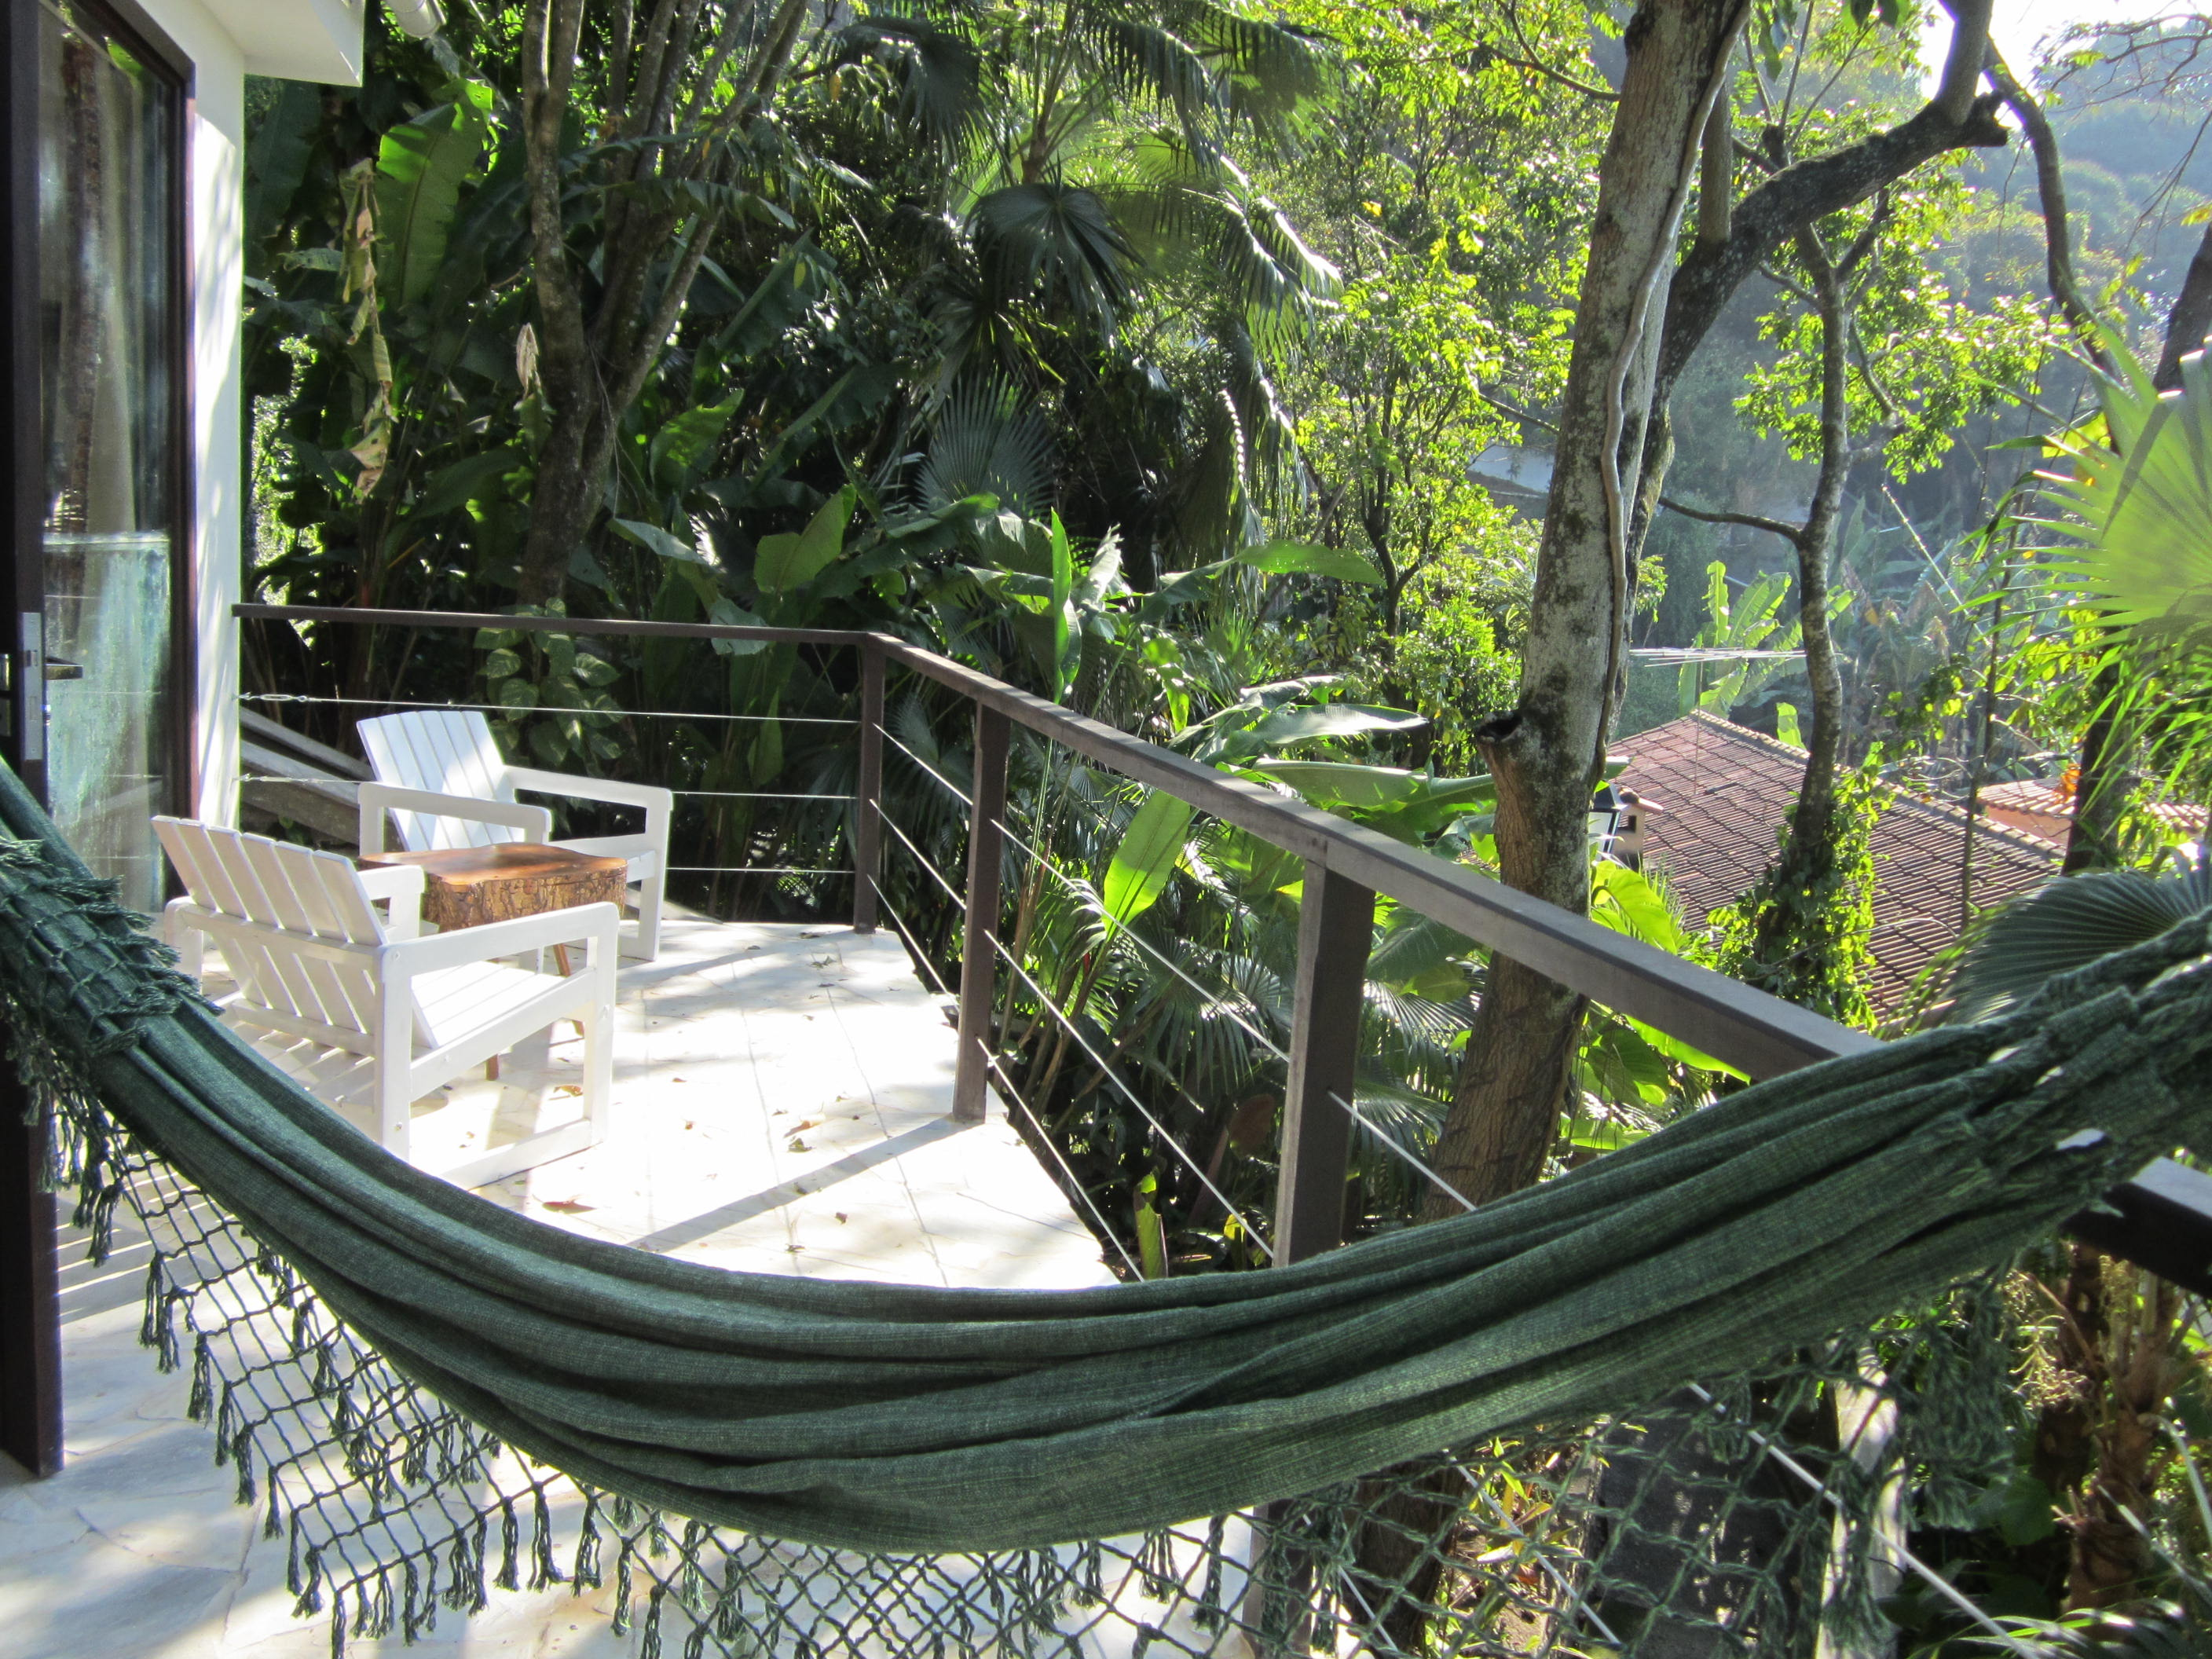 Hammock in the Bungalow awaits you